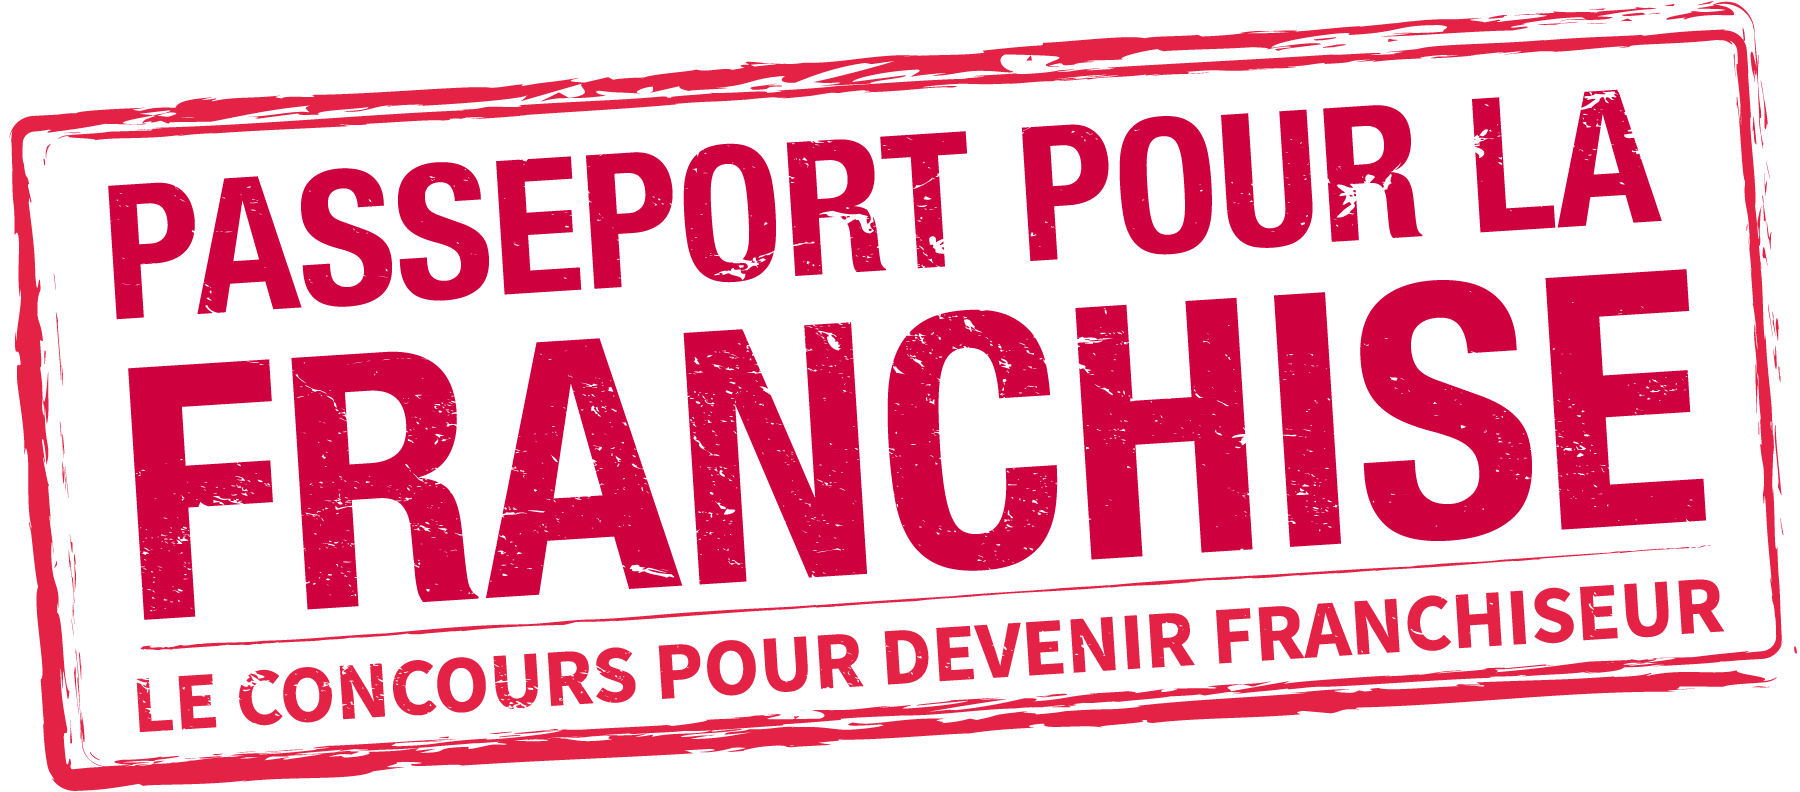 passeport-franchise